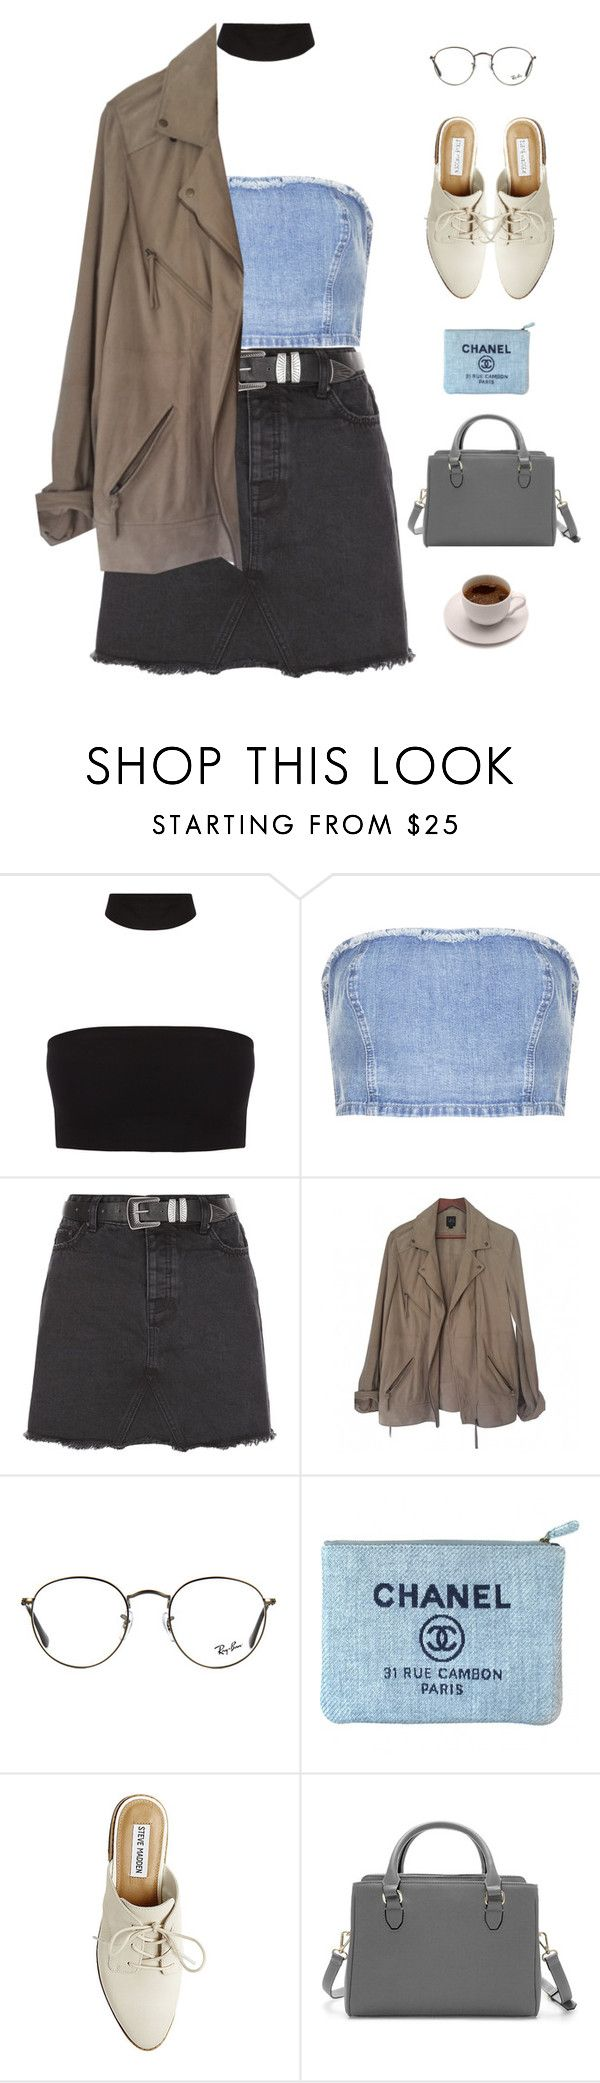 """""""First // Cold War Kids"""" by gre17 ❤ liked on Polyvore featuring Topshop, New Look, SWILDENS, Ray-Ban, Chanel, Steve Madden and Zara"""